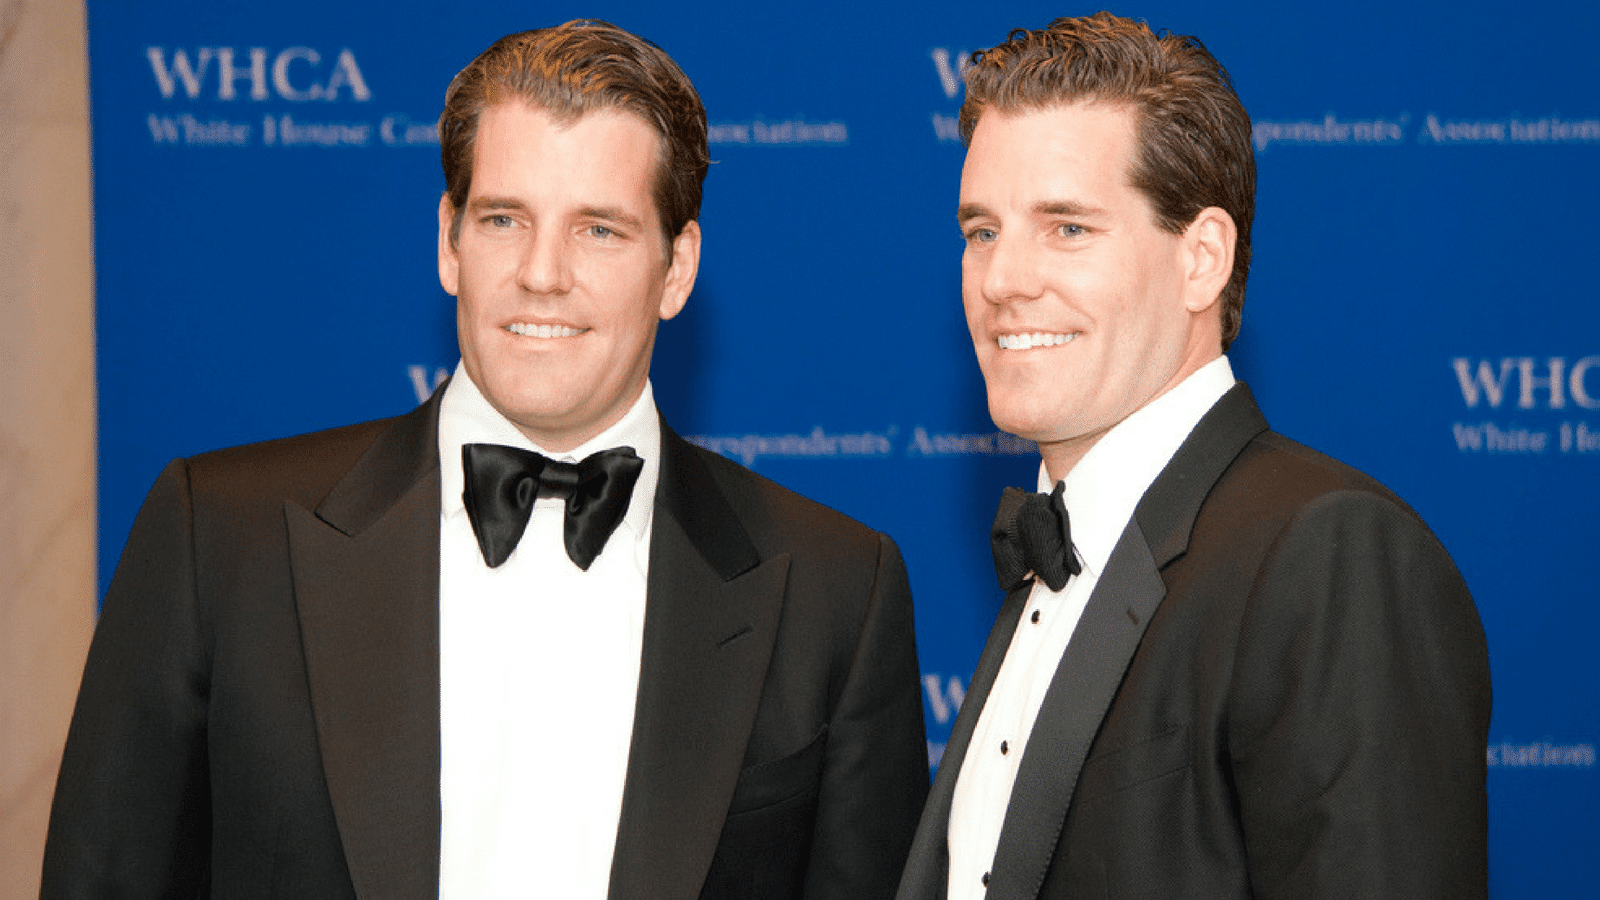 The Winklevoss Brother's launch their own stablecoin